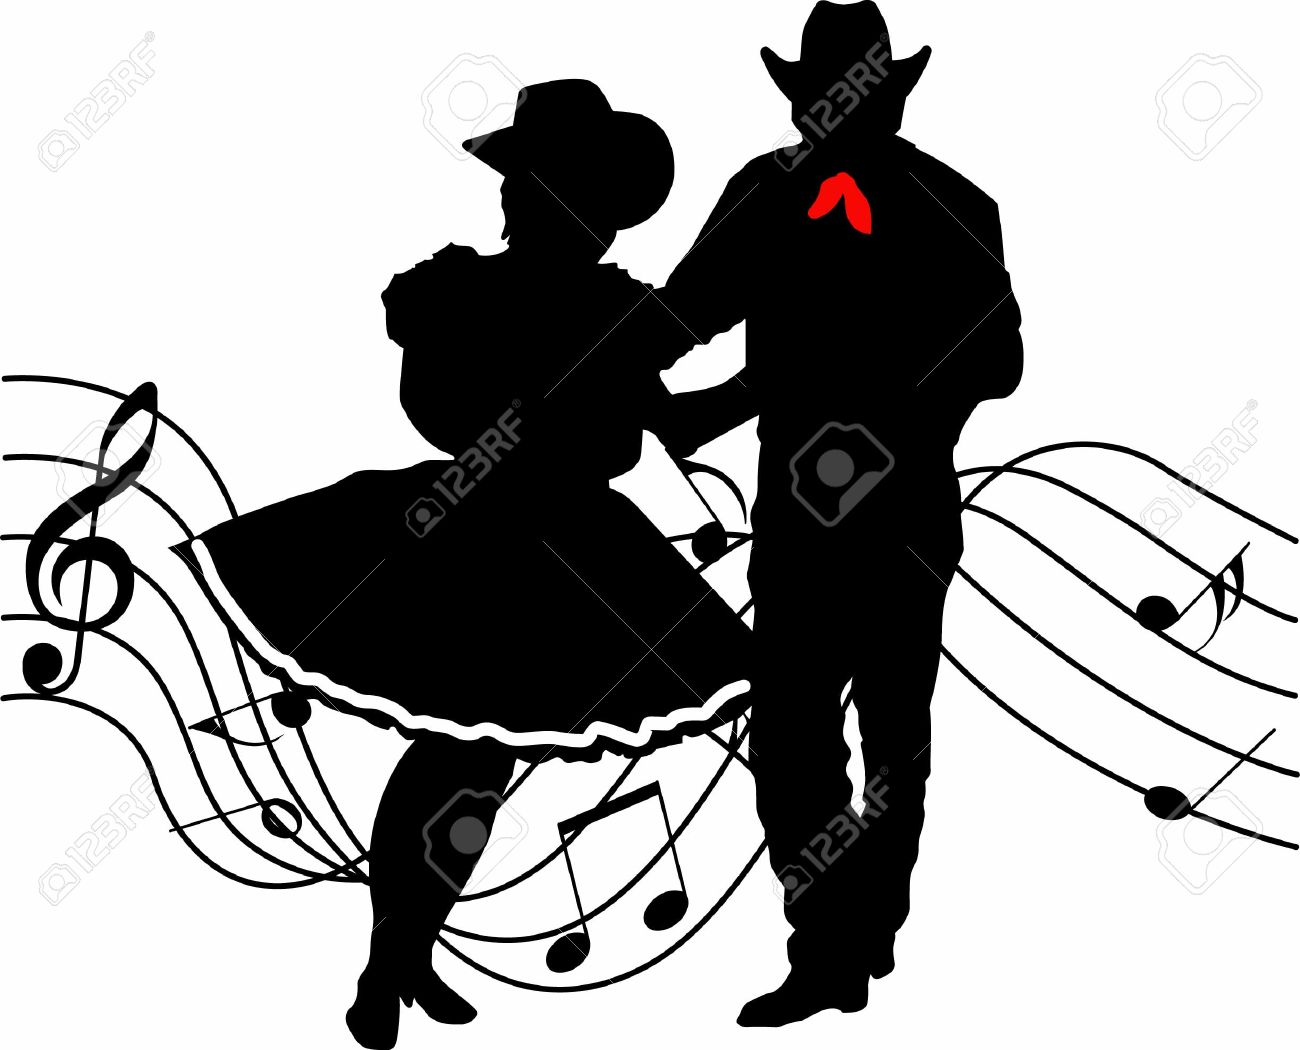 Western line dance clipart clip library Square Dancer Clipart | Free download best Square Dancer ... clip library